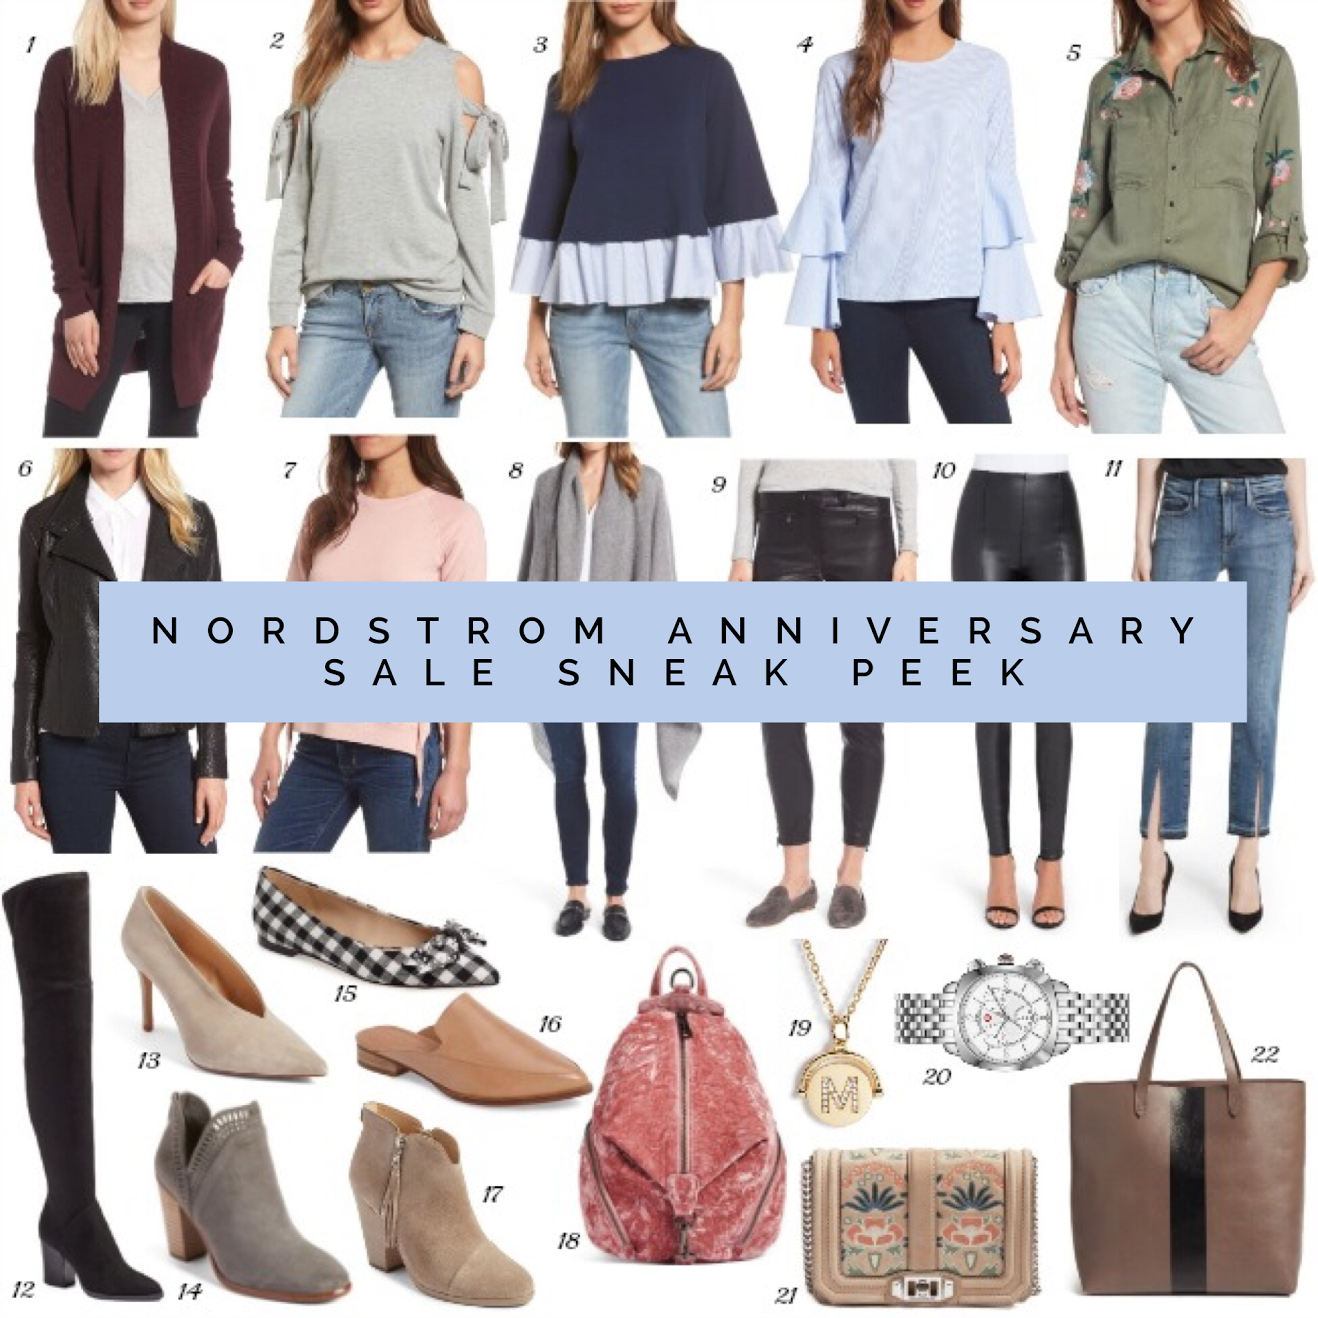 b5f29ee12 It s the most wonderful time of the year! I m sure that a lot of you have  already been hearing the buzz about the Nordstrom Anniversary Sale.